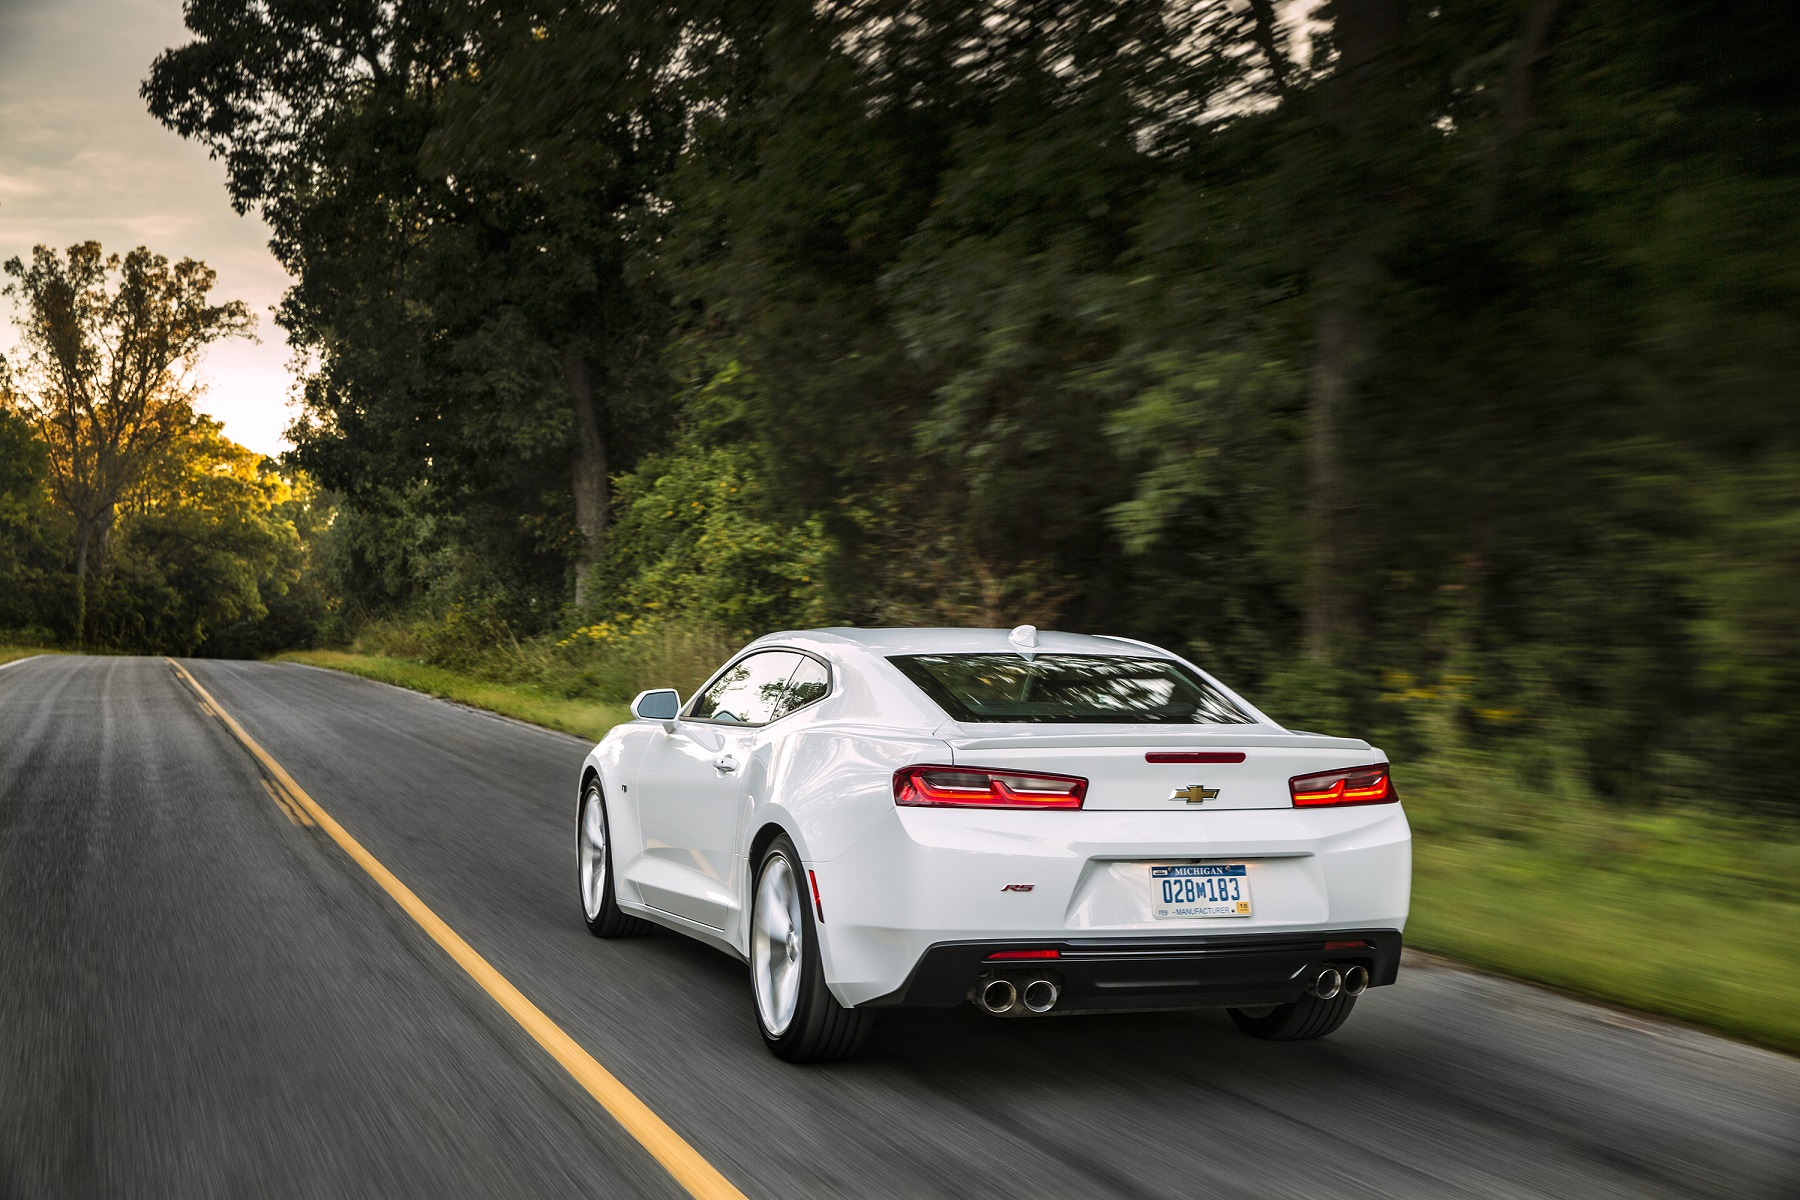 Manufacturer photo: The sixth-generation Chevrolet Camaro offers higher levels of performance, technology and refinement and is designed to maintain the sporty car segment leadership earned over the past five years